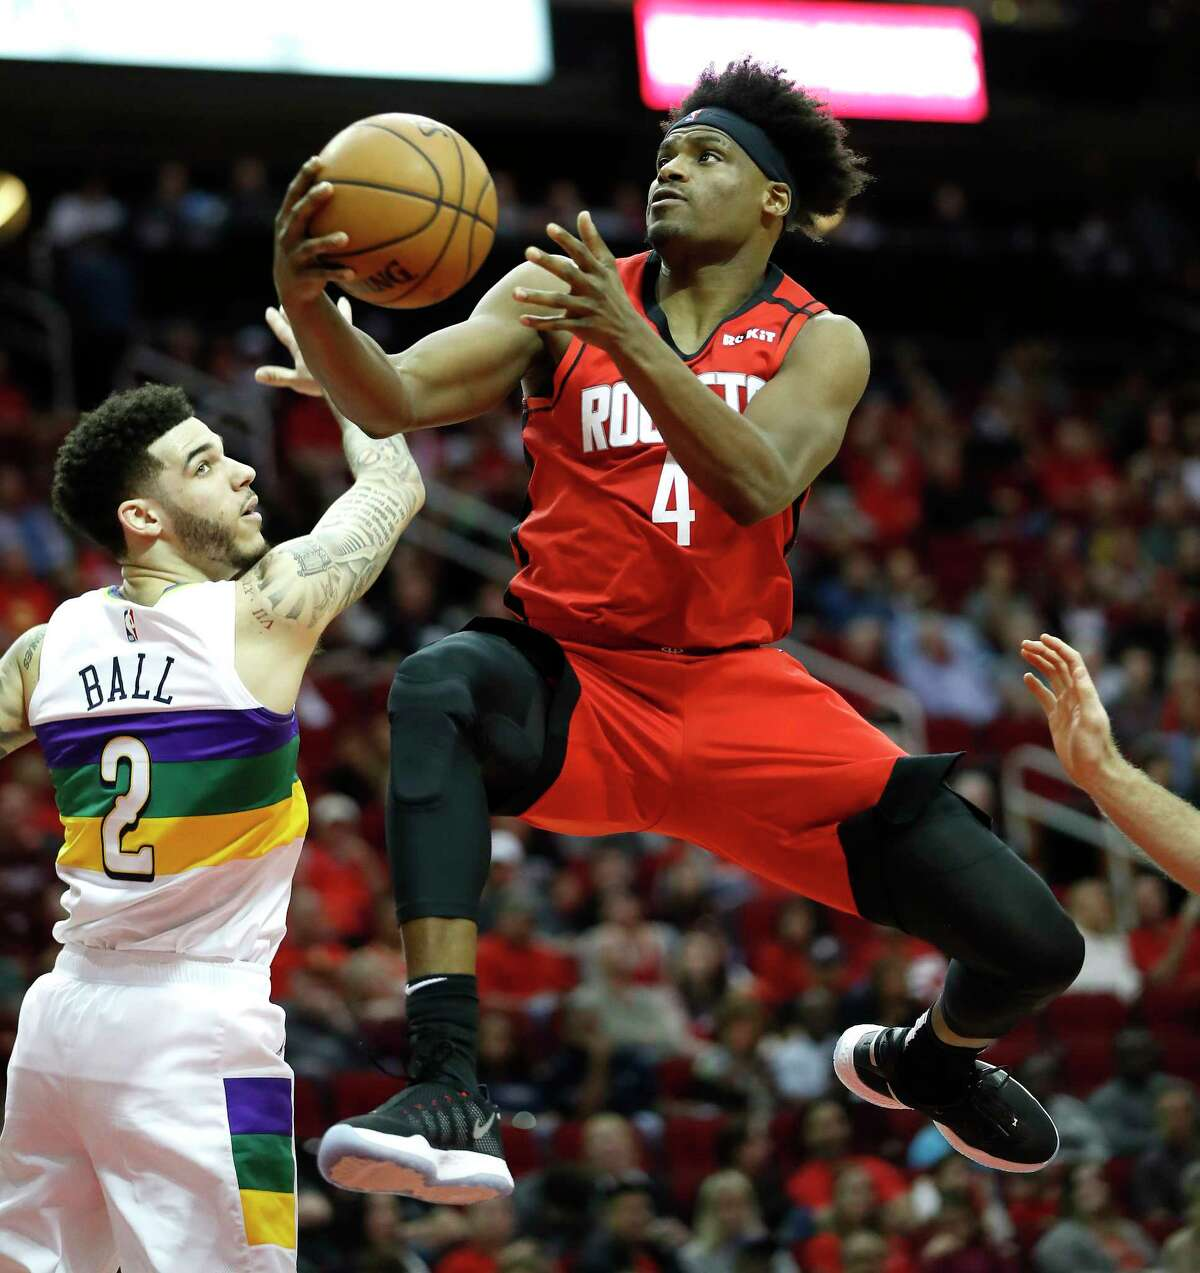 Houston Rockets forward Danuel House Jr. (4) goes up for the basket against New Orleans Pelicans guard Lonzo Ball (2) during the first half of an NBA basketball game at Toyota Center in Houston, Sunday, Feb. 2, 2020.